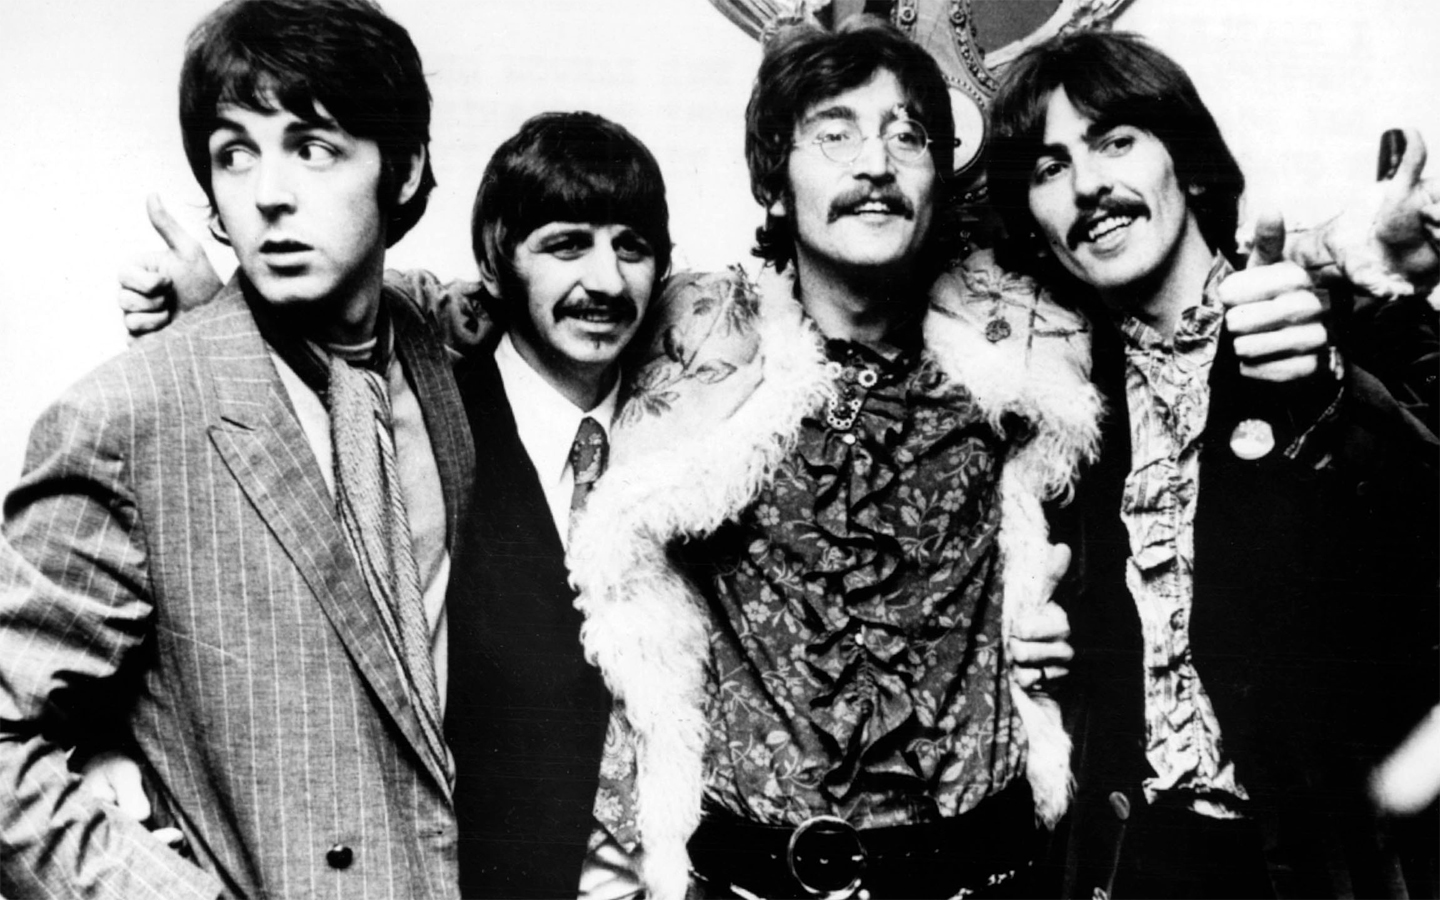 The Beatles Iphone 5 Wallpaper The Beatles Wallpaper And Background Image 1440x900 Id